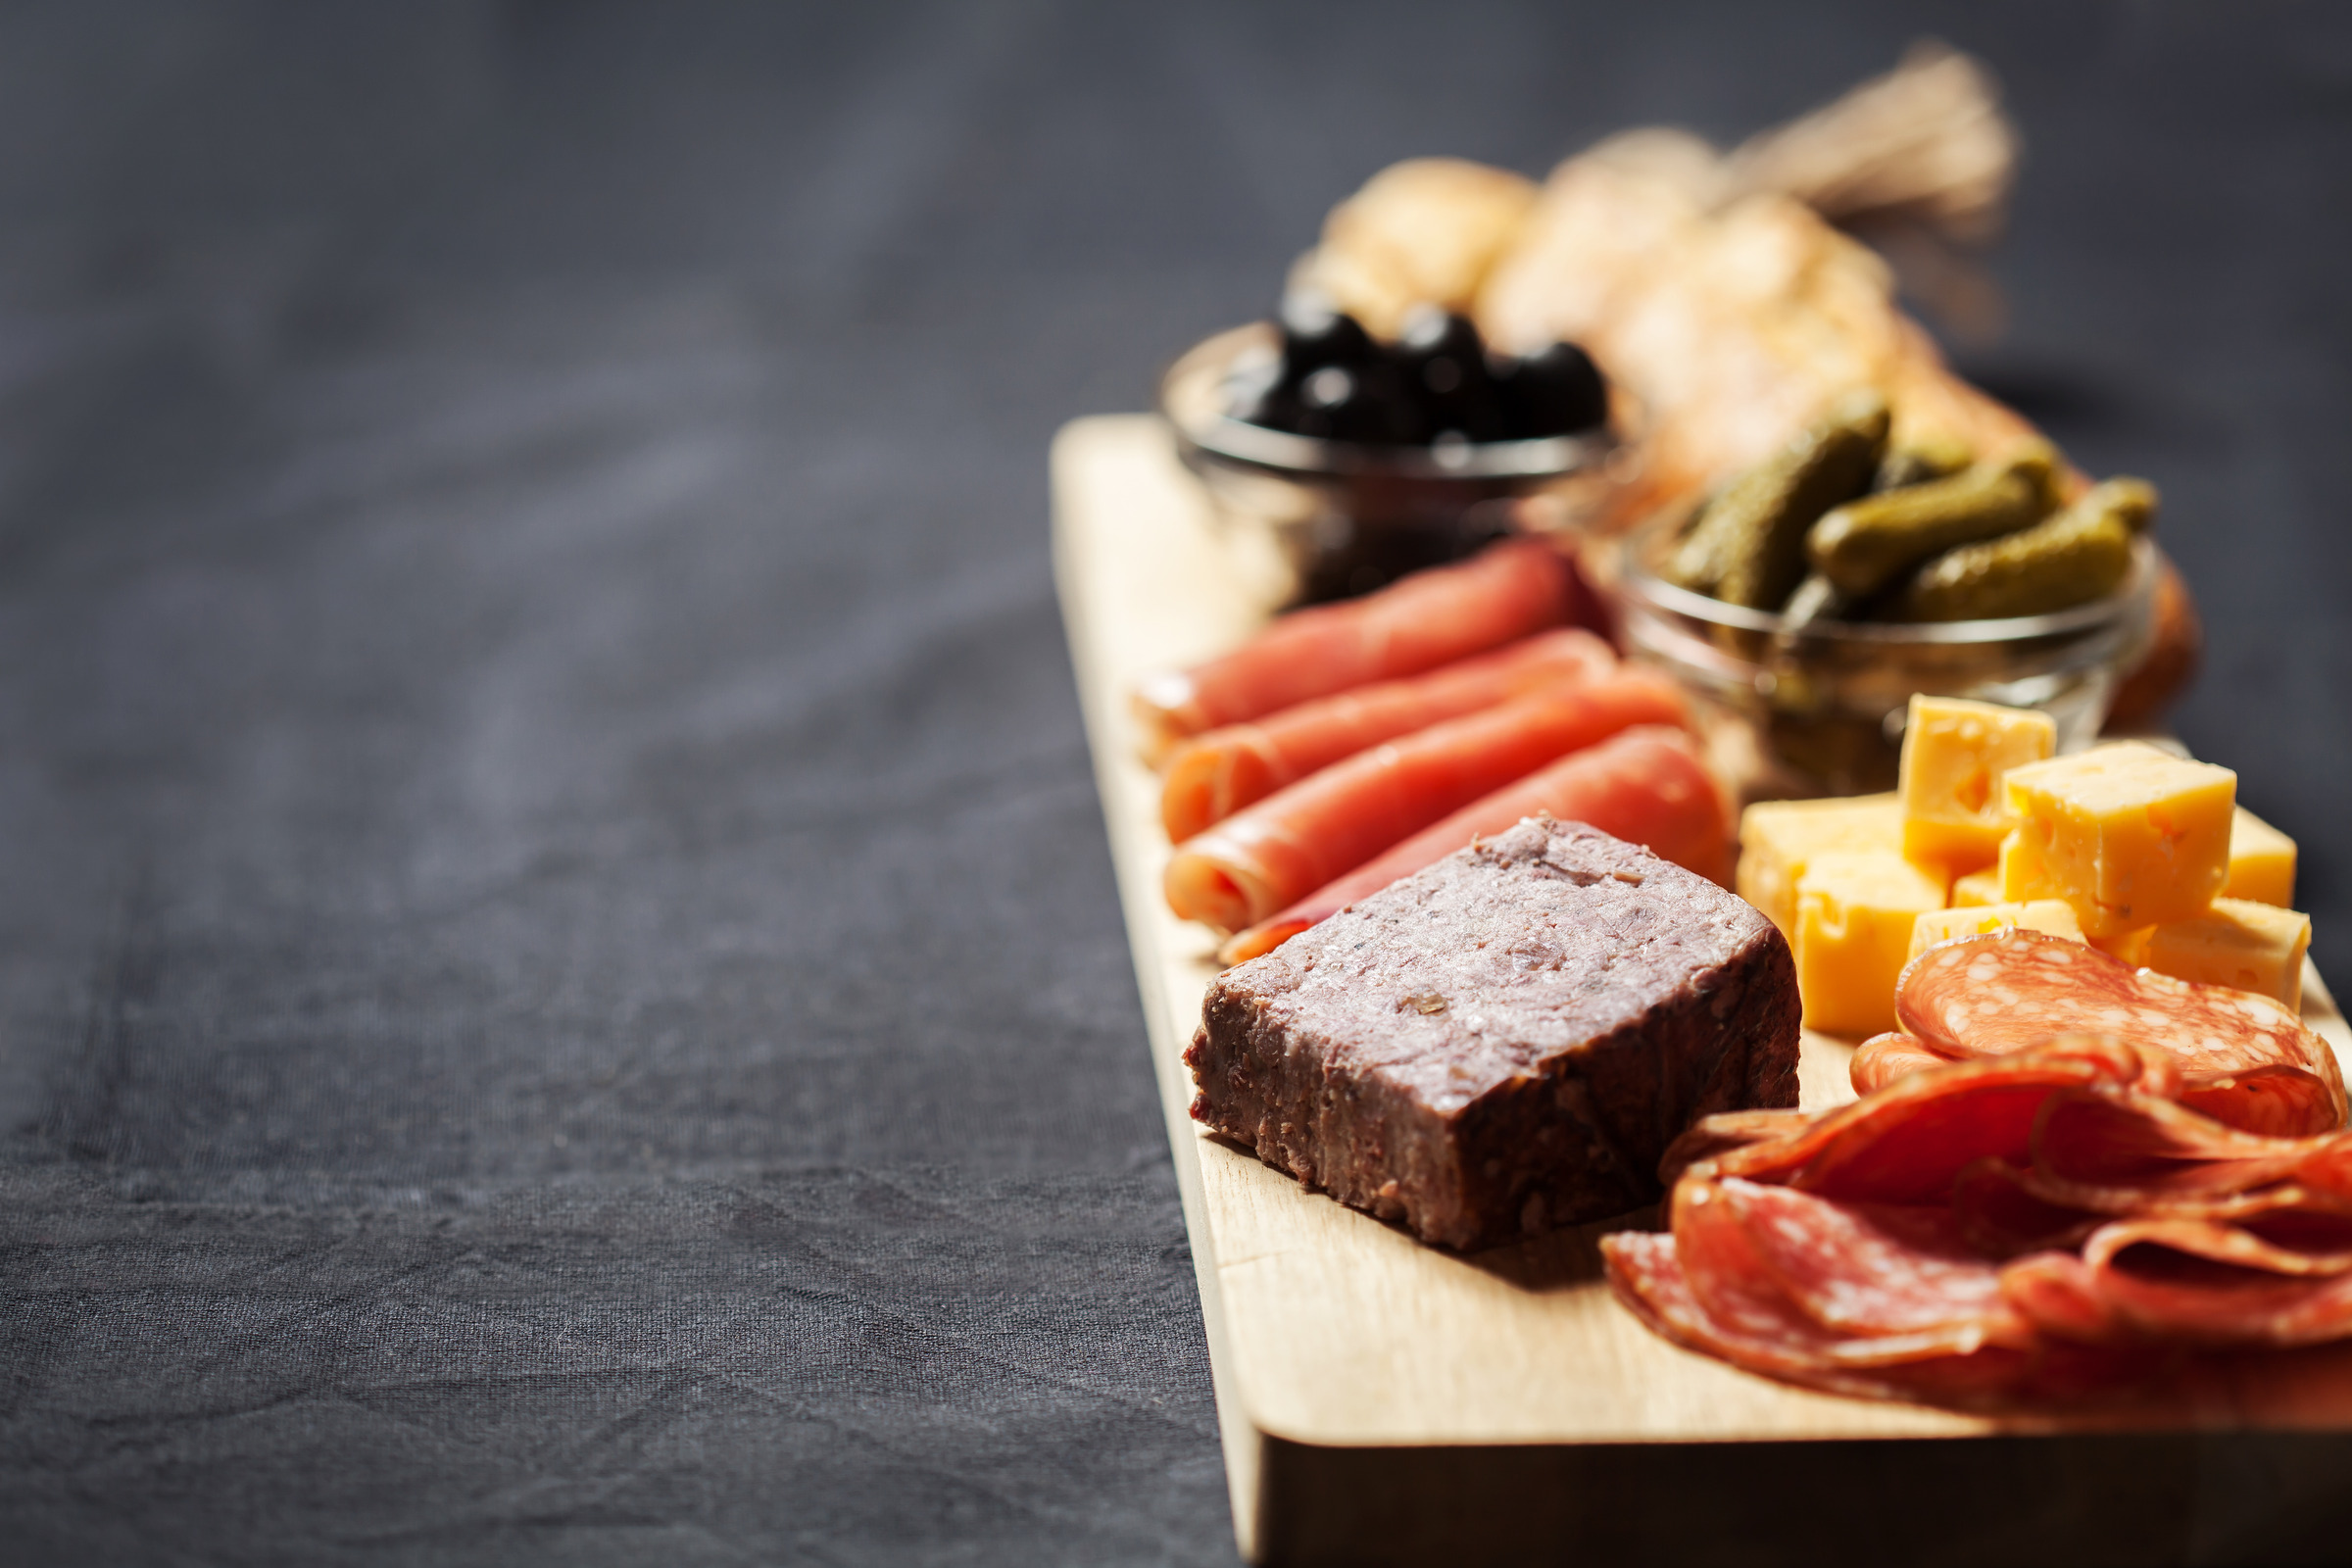 Charcuterie assortment, cheese, olives and gherkins on wooden board